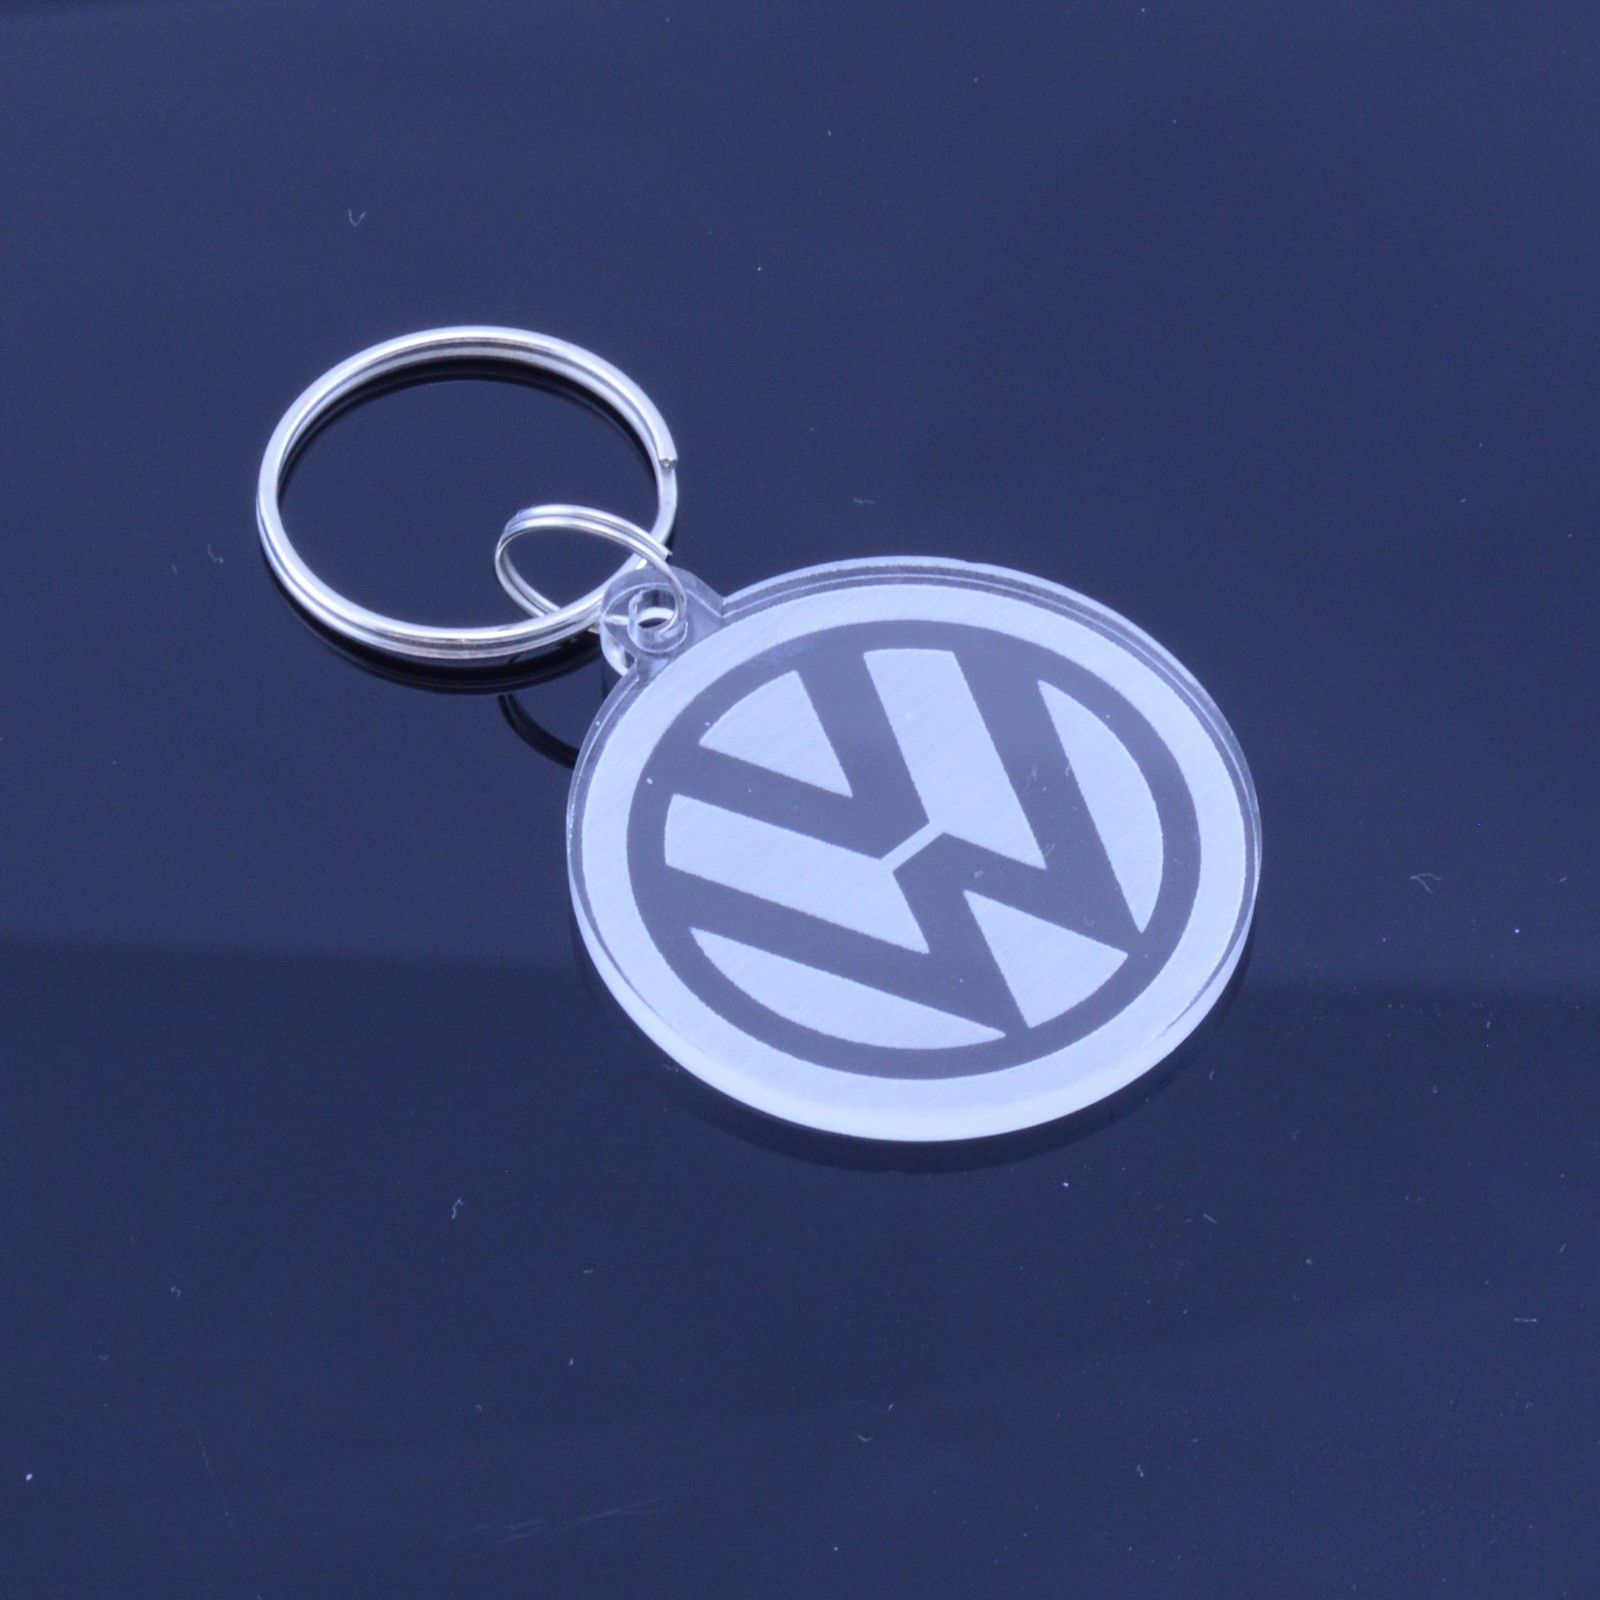 VW Volkswagen Car Badge Keyring - Handmade Laser Cut Gift  8a656d274